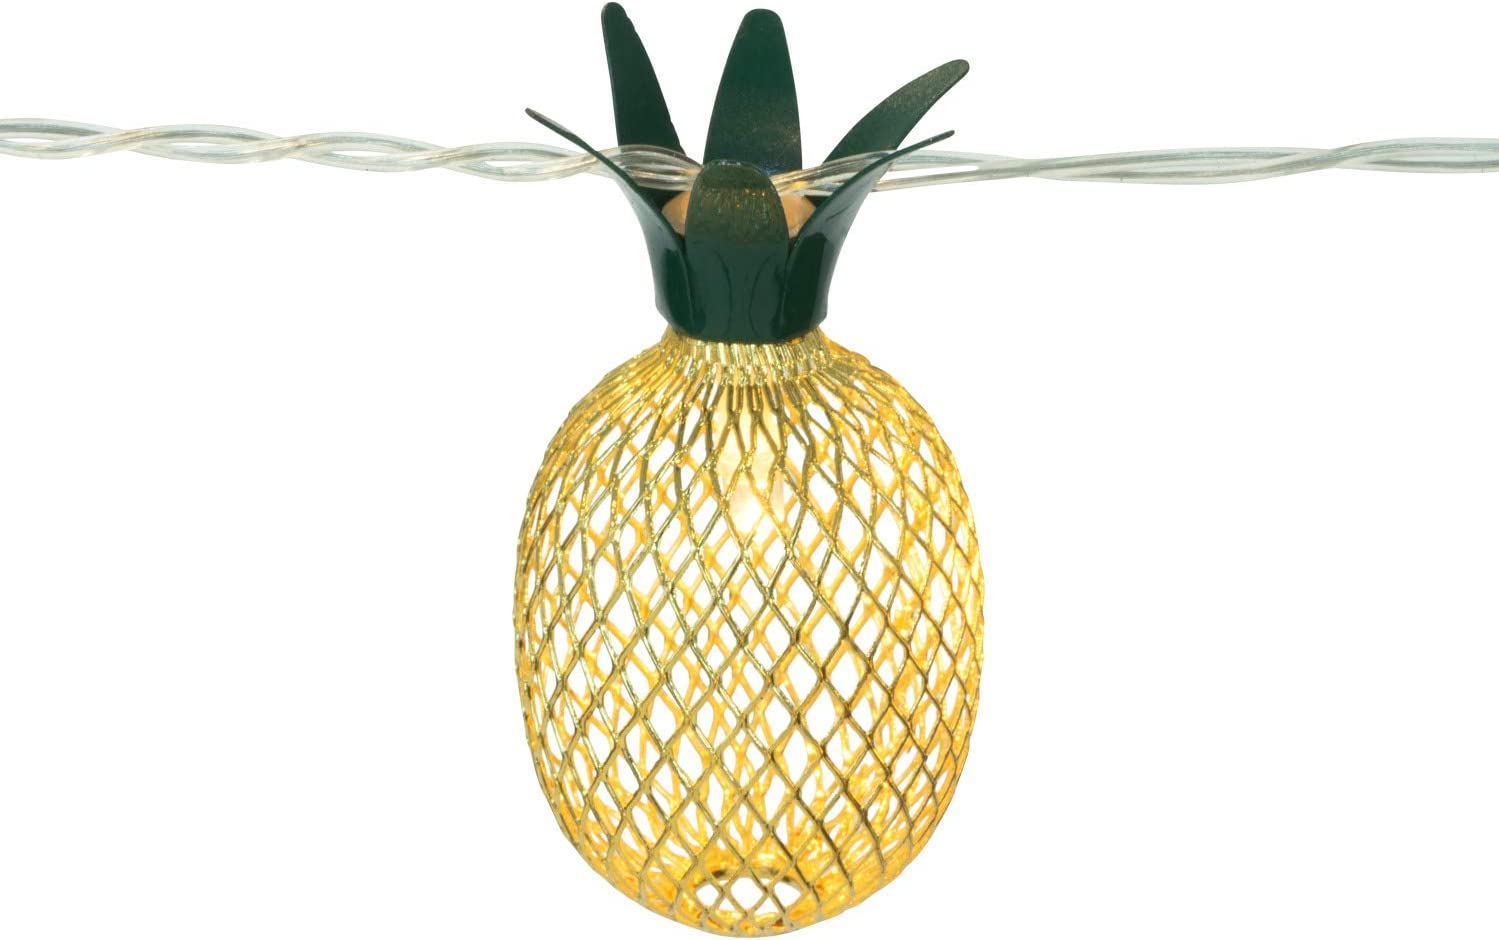 10 LED Pineapple Decorative String Lights by Modfamily, Bedroom & Home Decor, Party Decorations - LED Lighting Chain